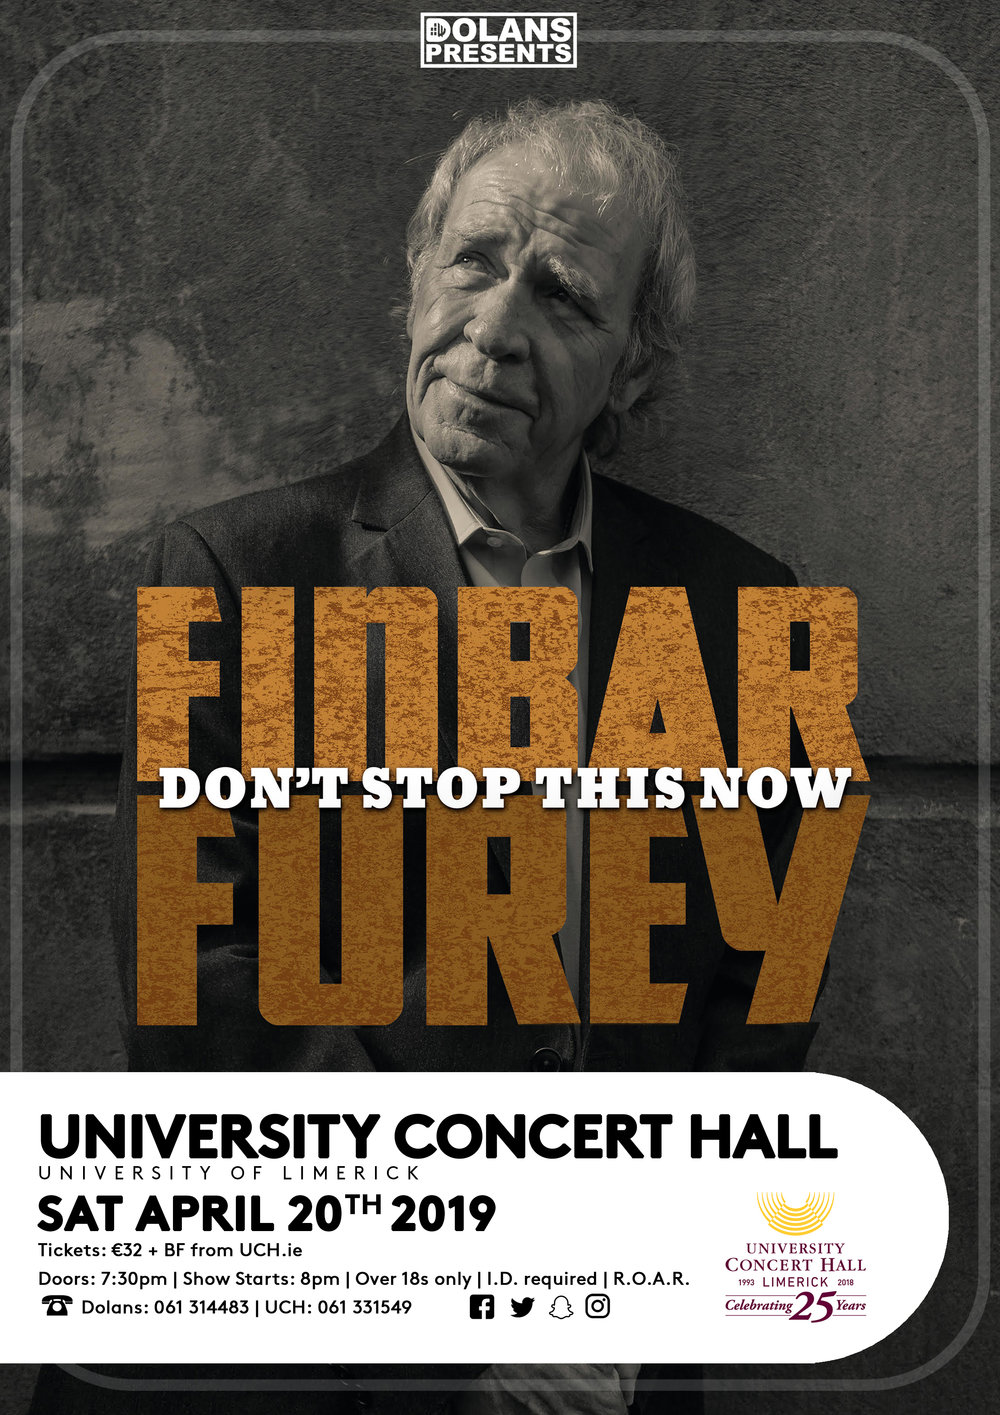 5a3c99d2bc93 Tickets €32 from University Concert Hall - (strictly over 18 s)